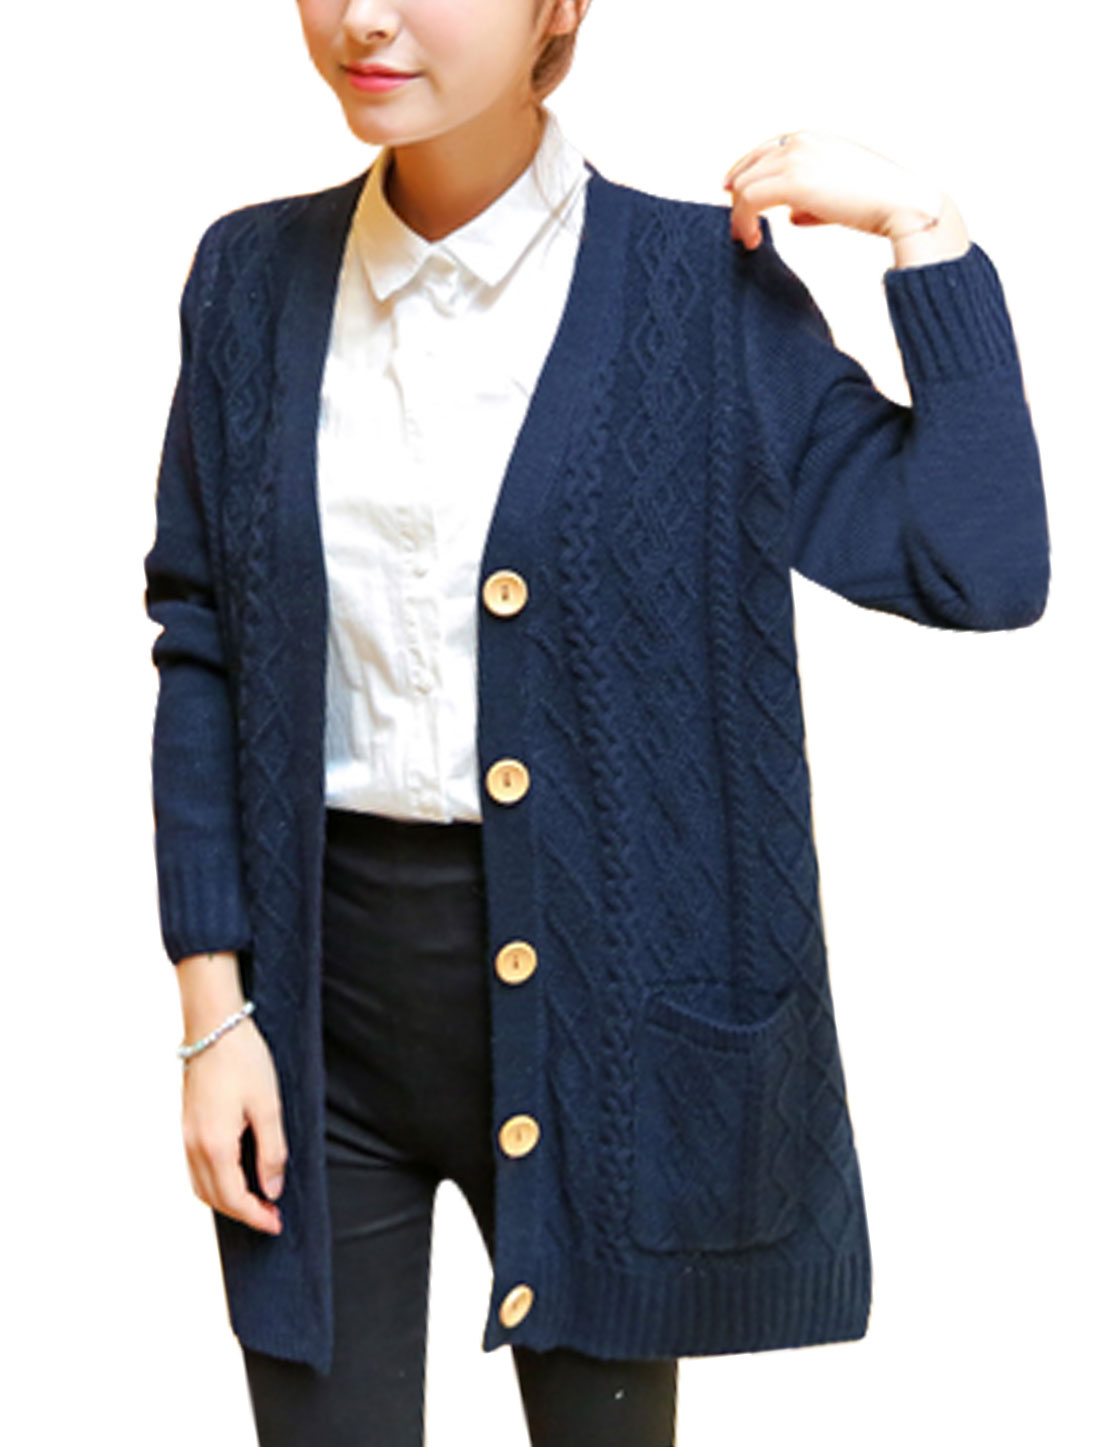 Women Fashion Ribbing Trim Cable Rib Knit Design Tunic Knit Cardigan Navy Blue XS